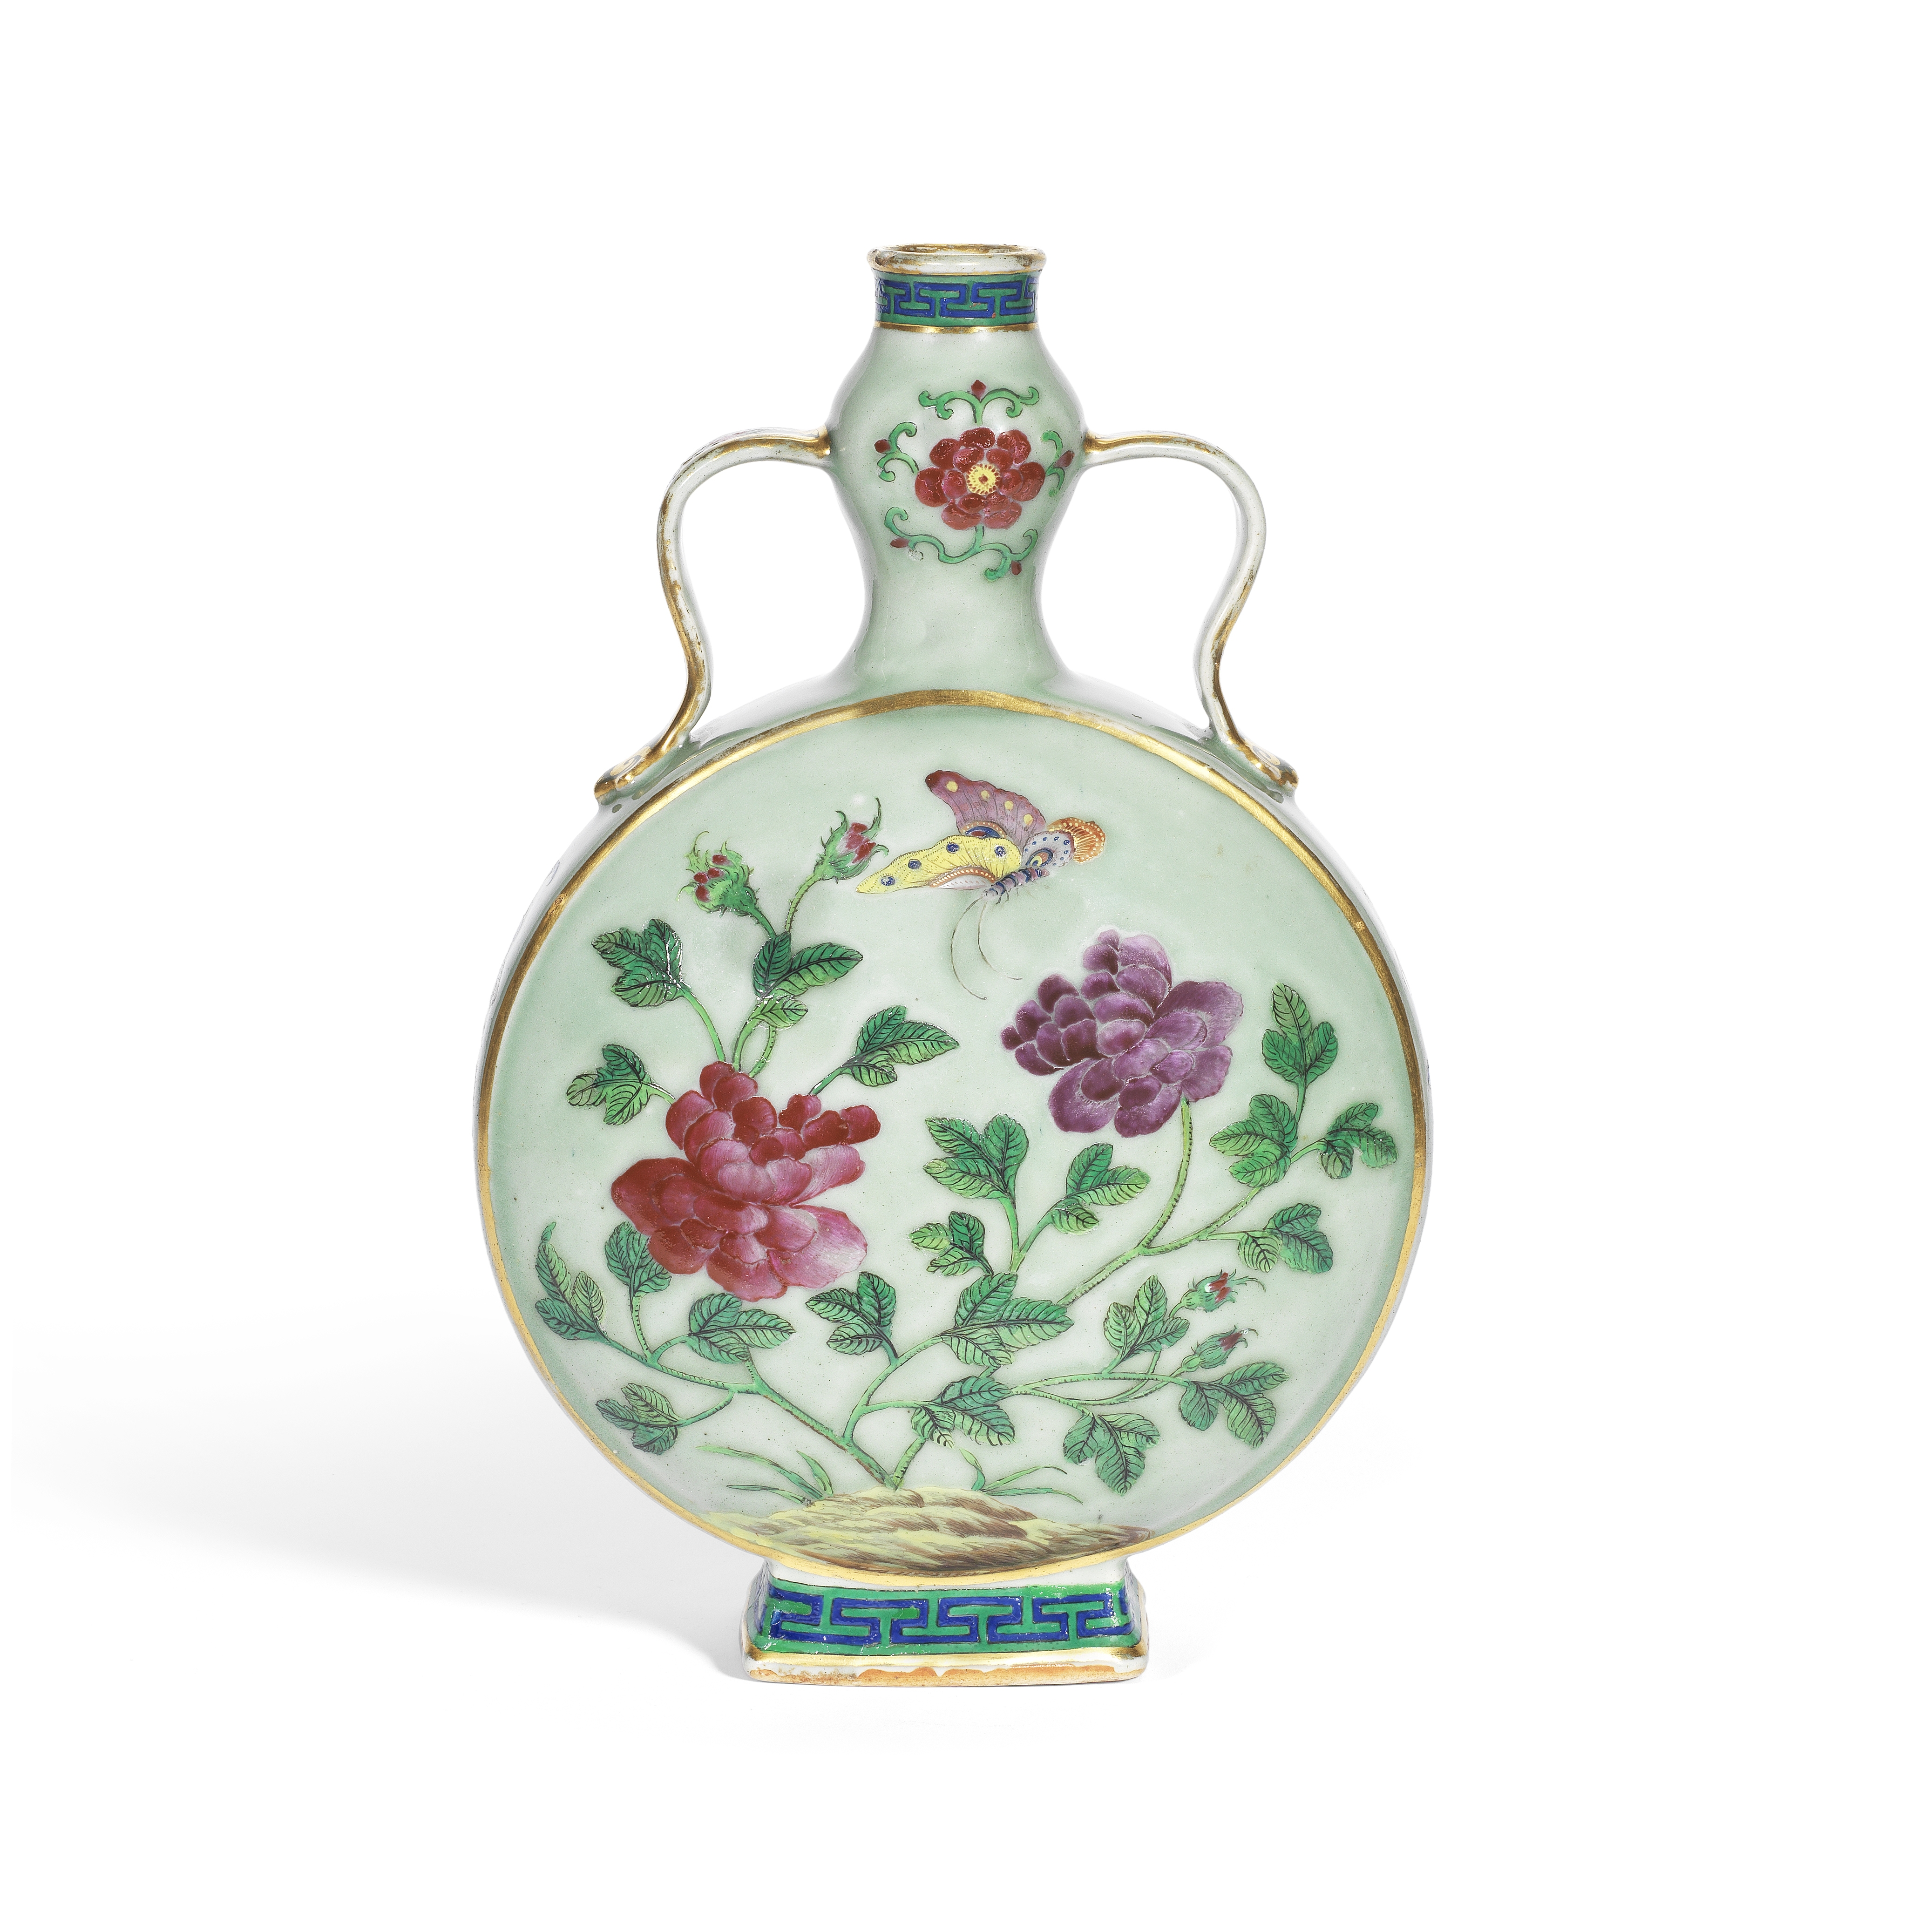 A FAMILLE ROSE CELADON-GROUND MOONFLASK 19th century